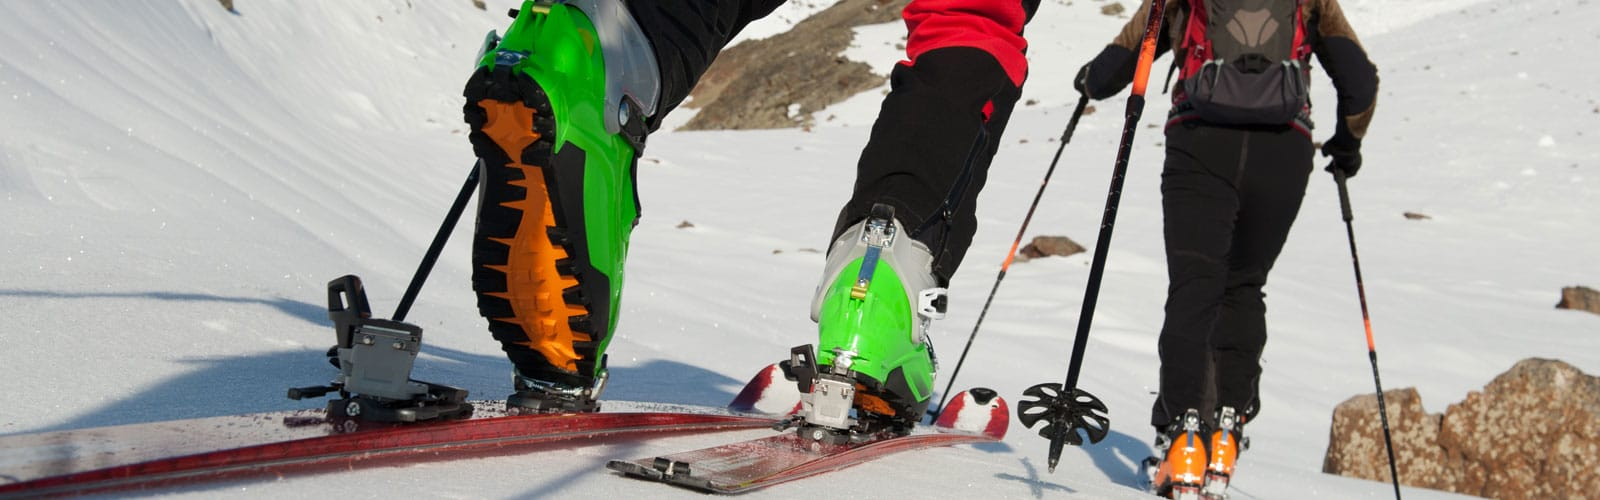 Womens Skis With Bindings And Boots Image Collections Boot